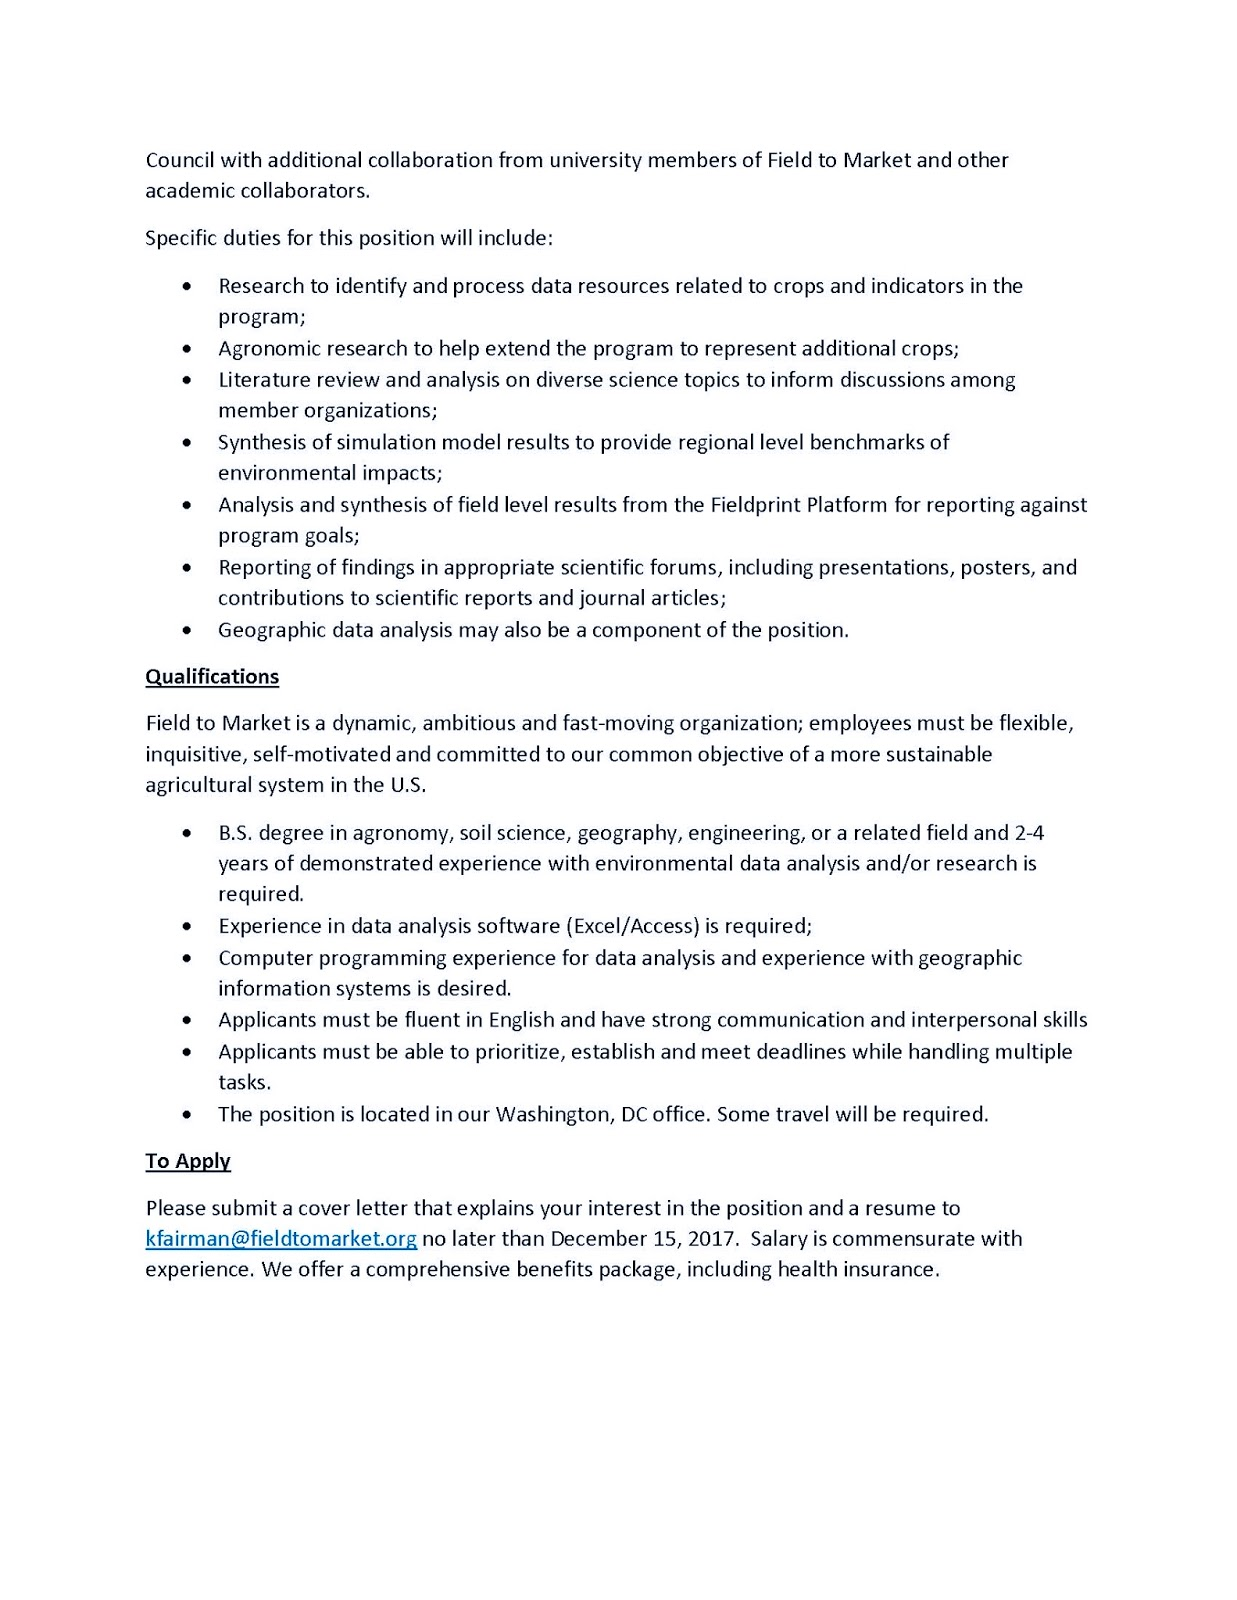 resume examples umd federal narrative what to say on a cover letter